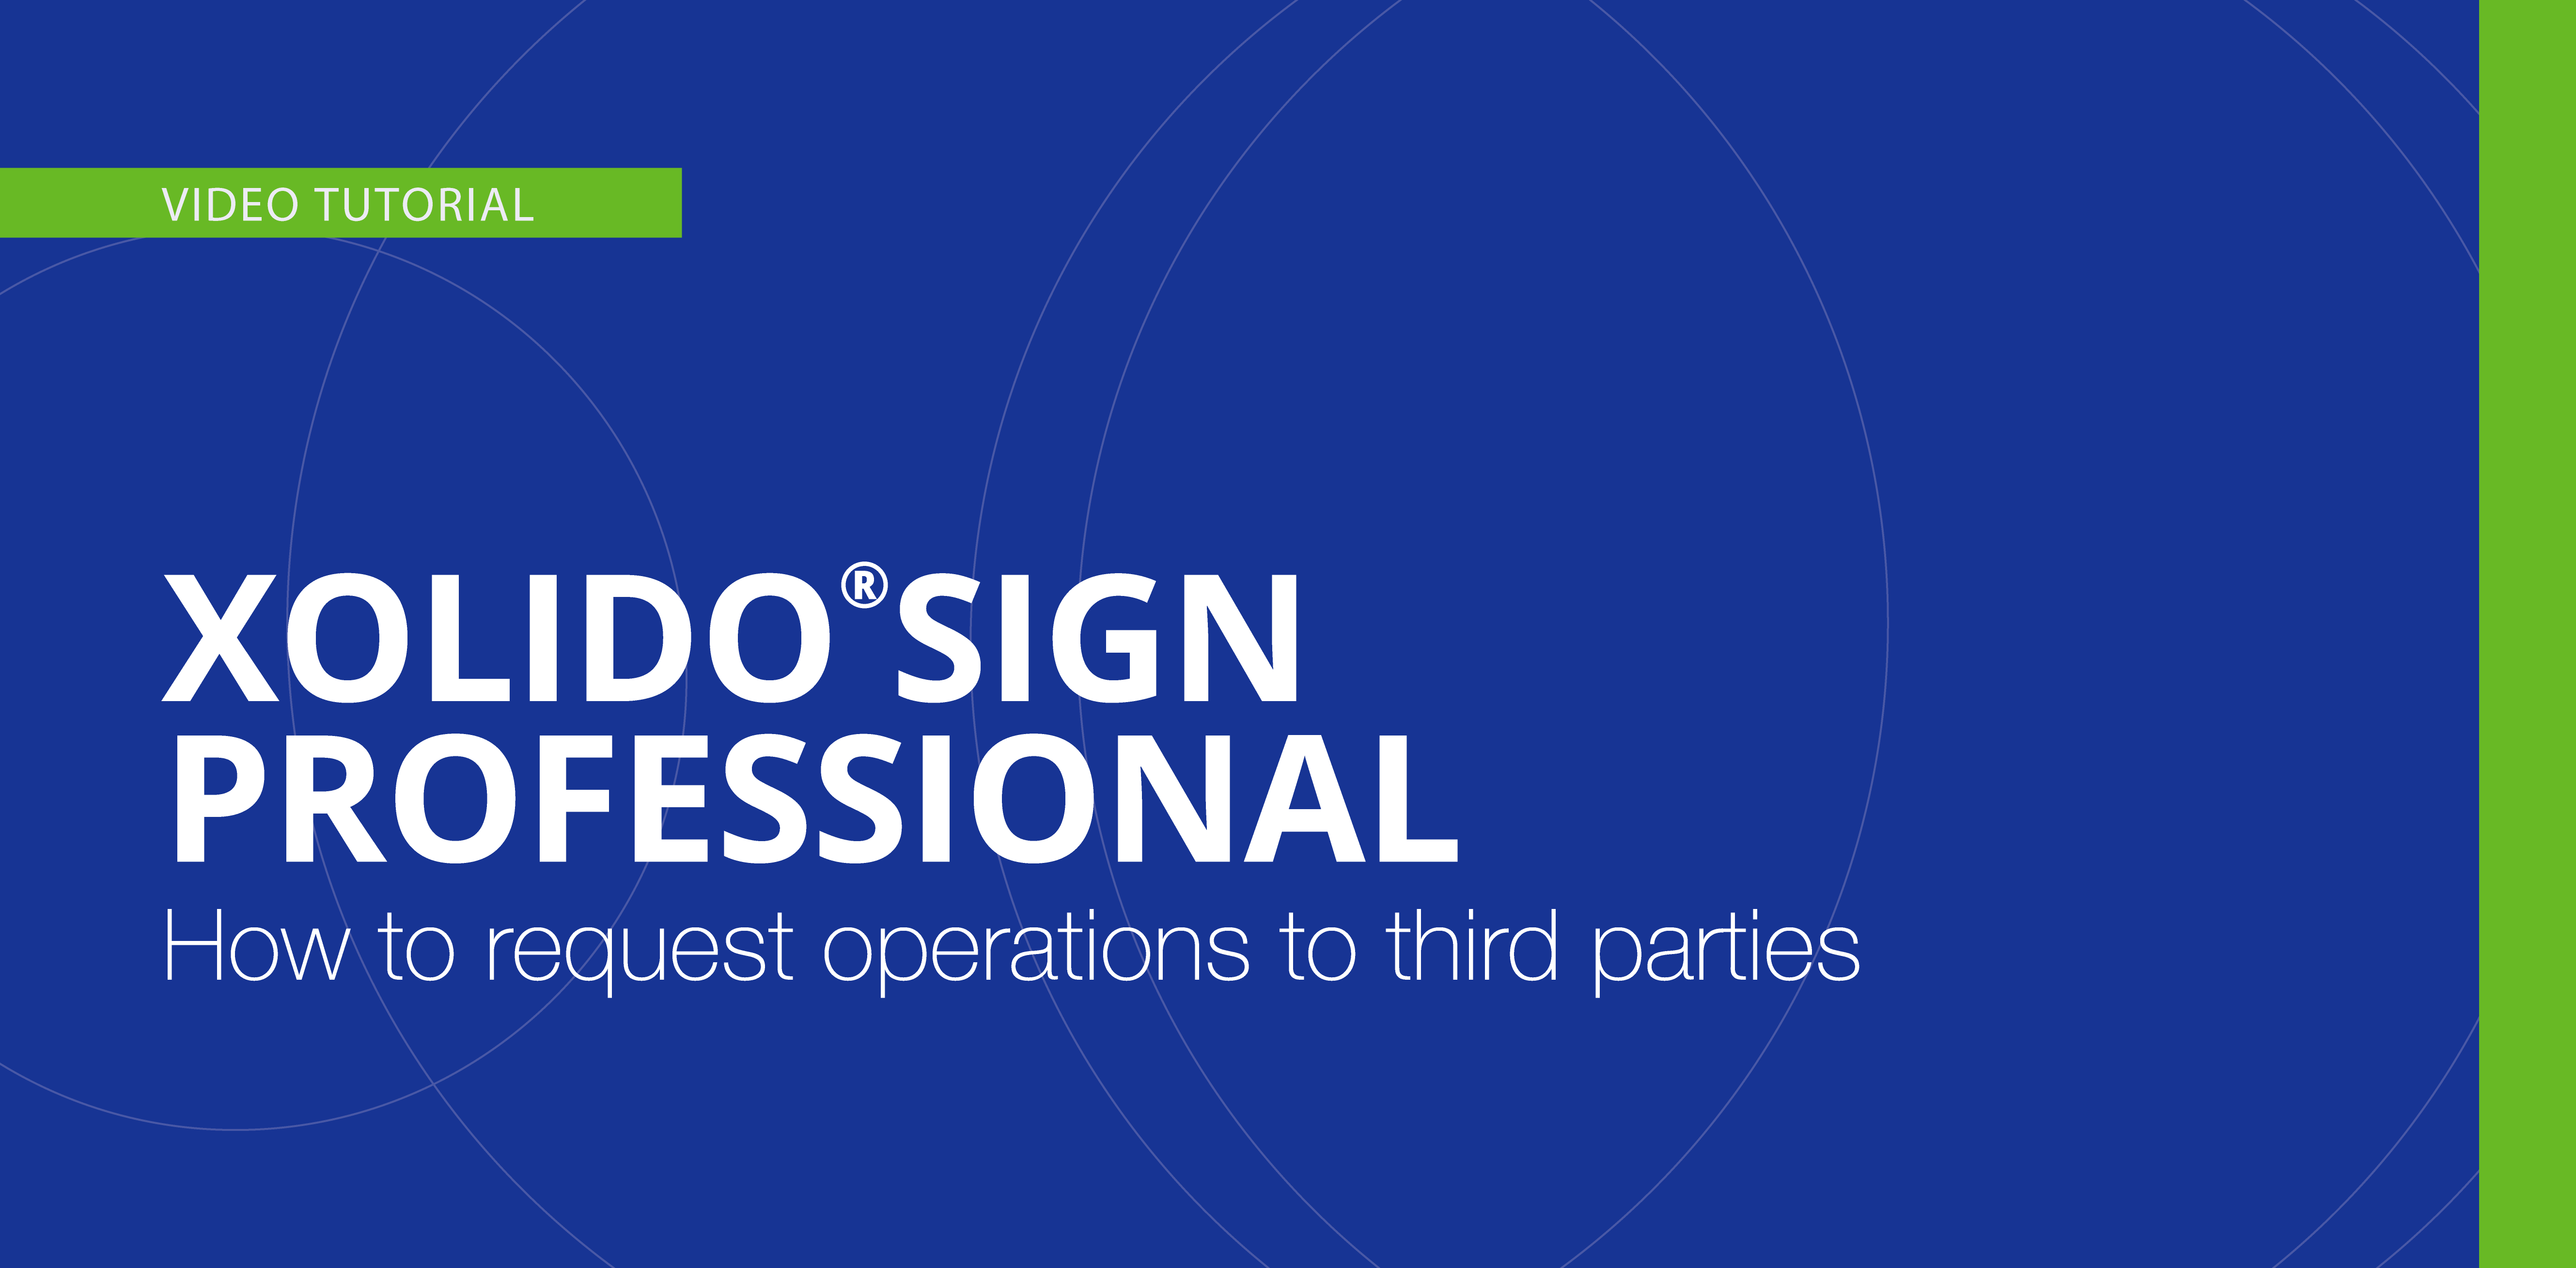 How to request operations to third parties